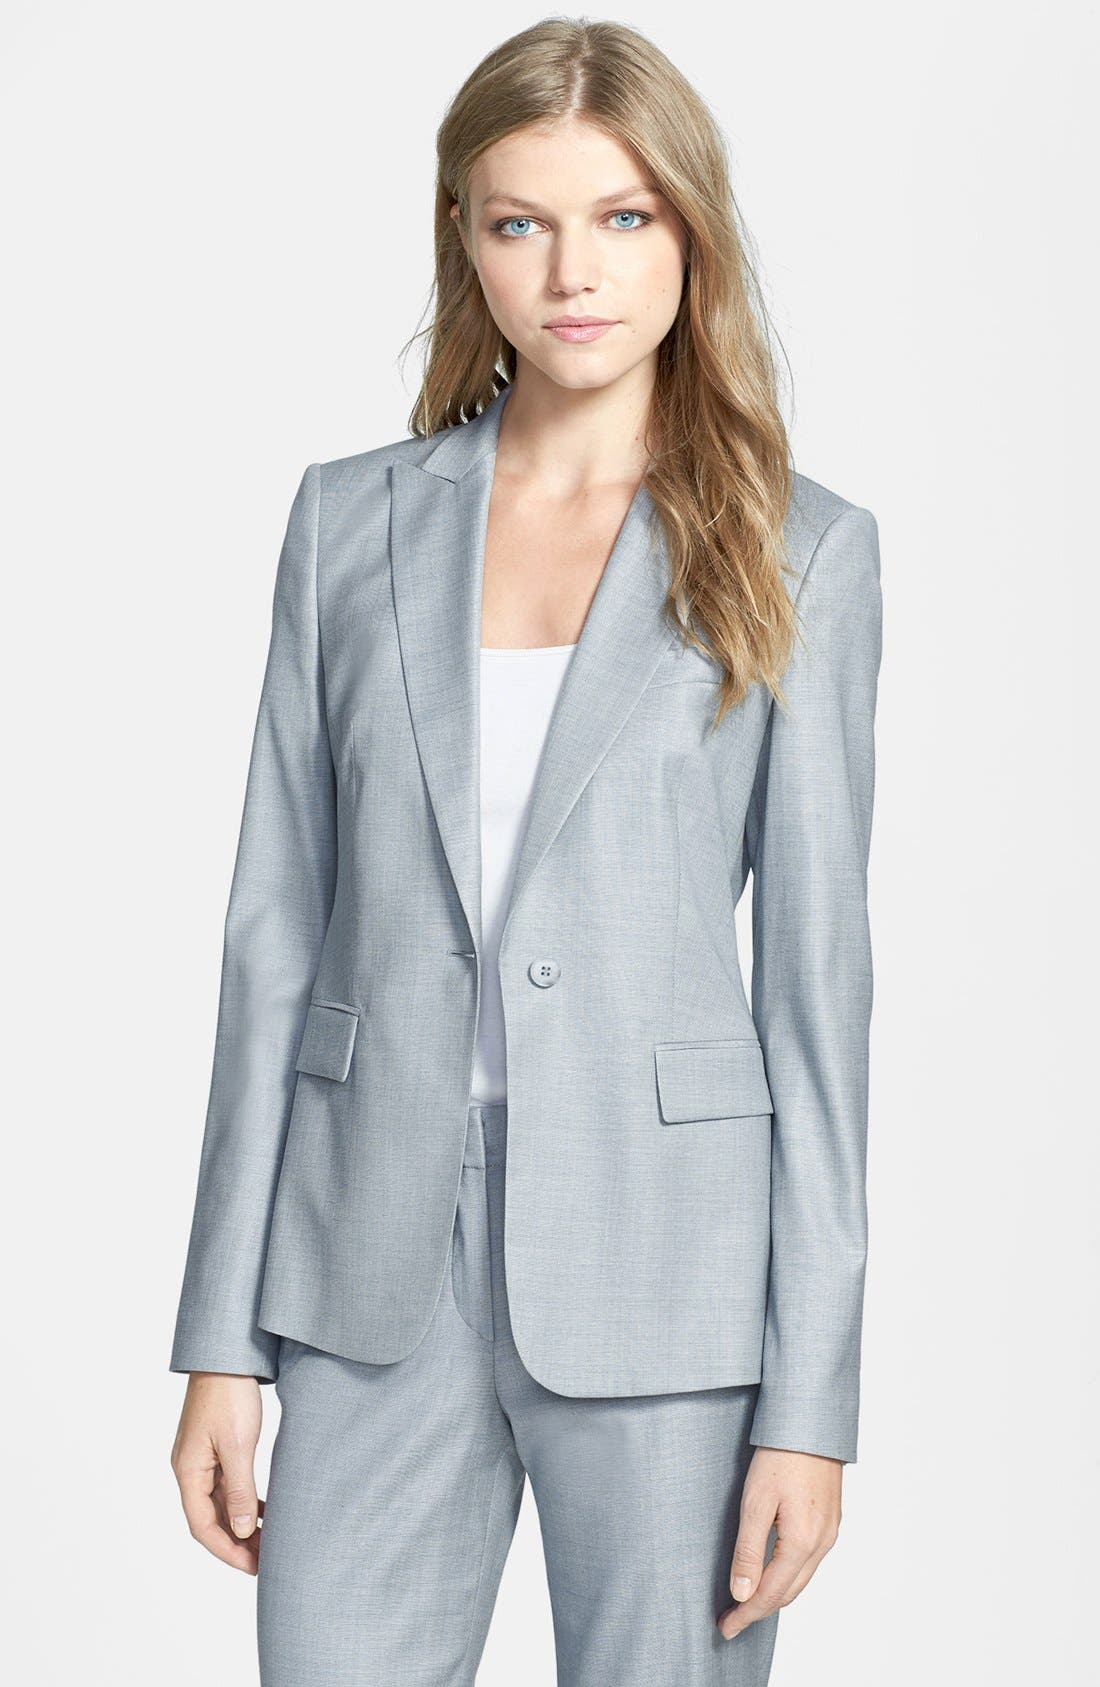 Main Image - BOSS HUGO BOSS 'Juicy 6' Stretch Wool Jacket